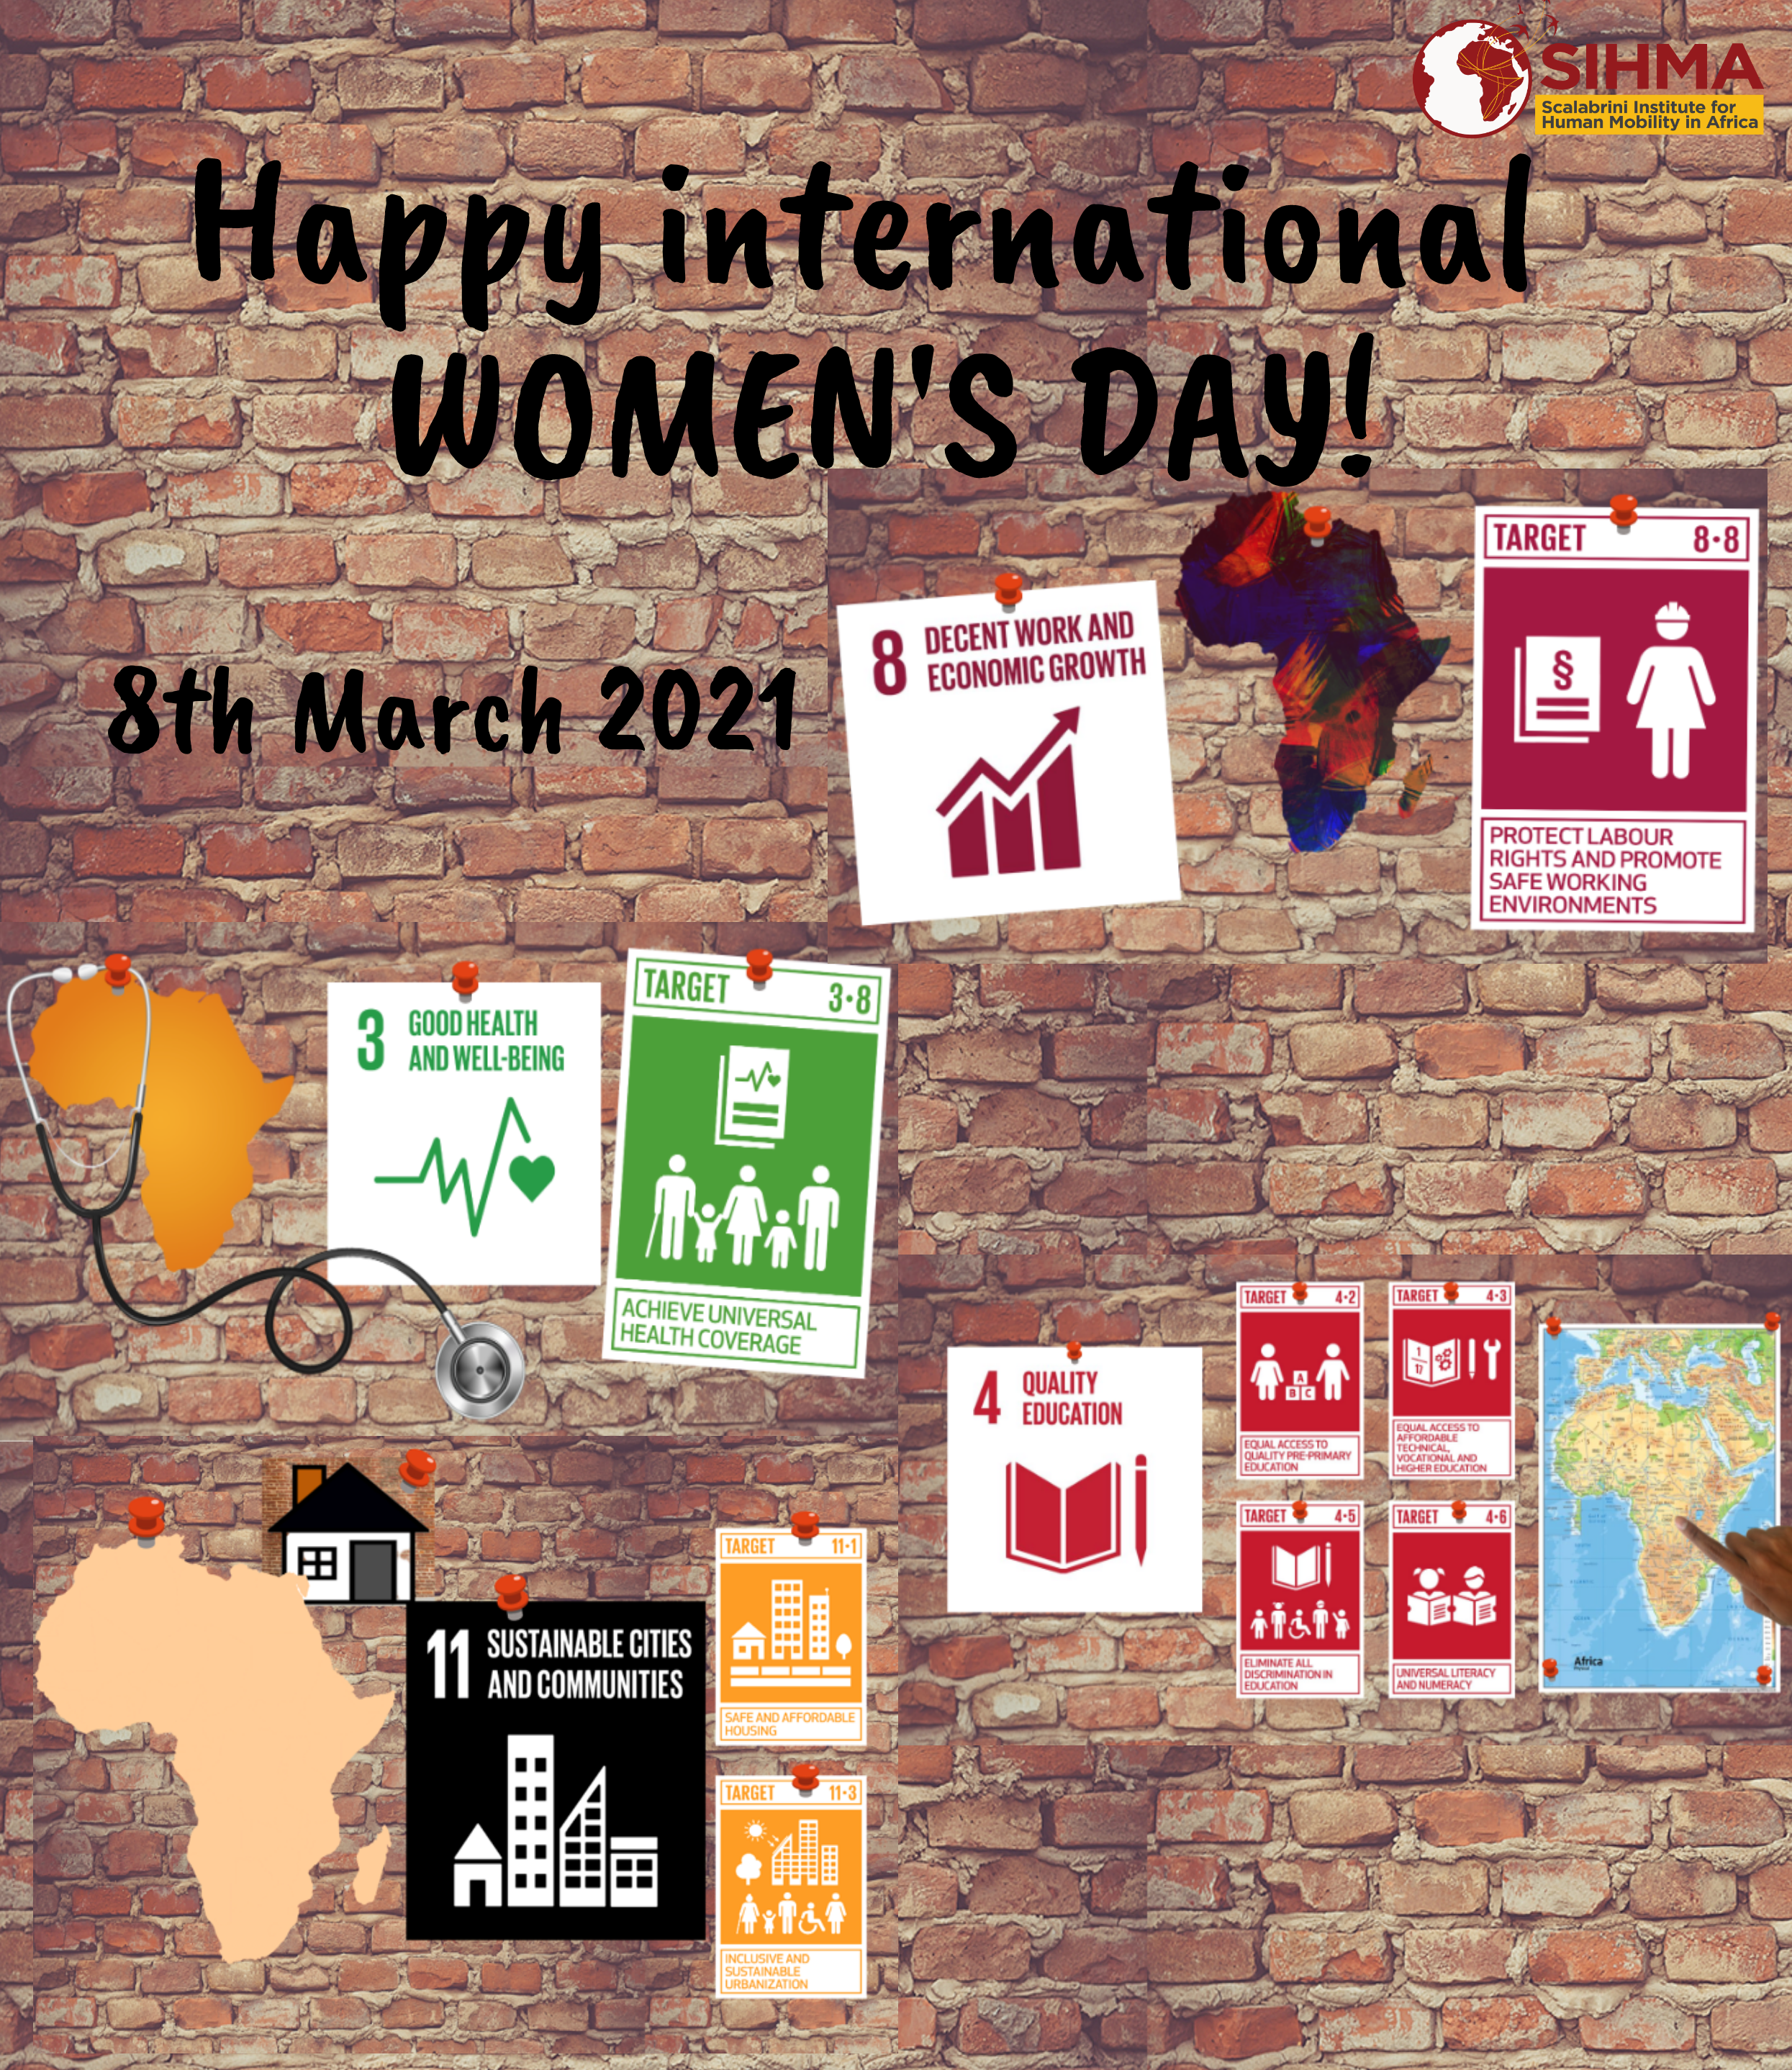 https://sihma.org.za/photos/shares/women-series_2910912.png